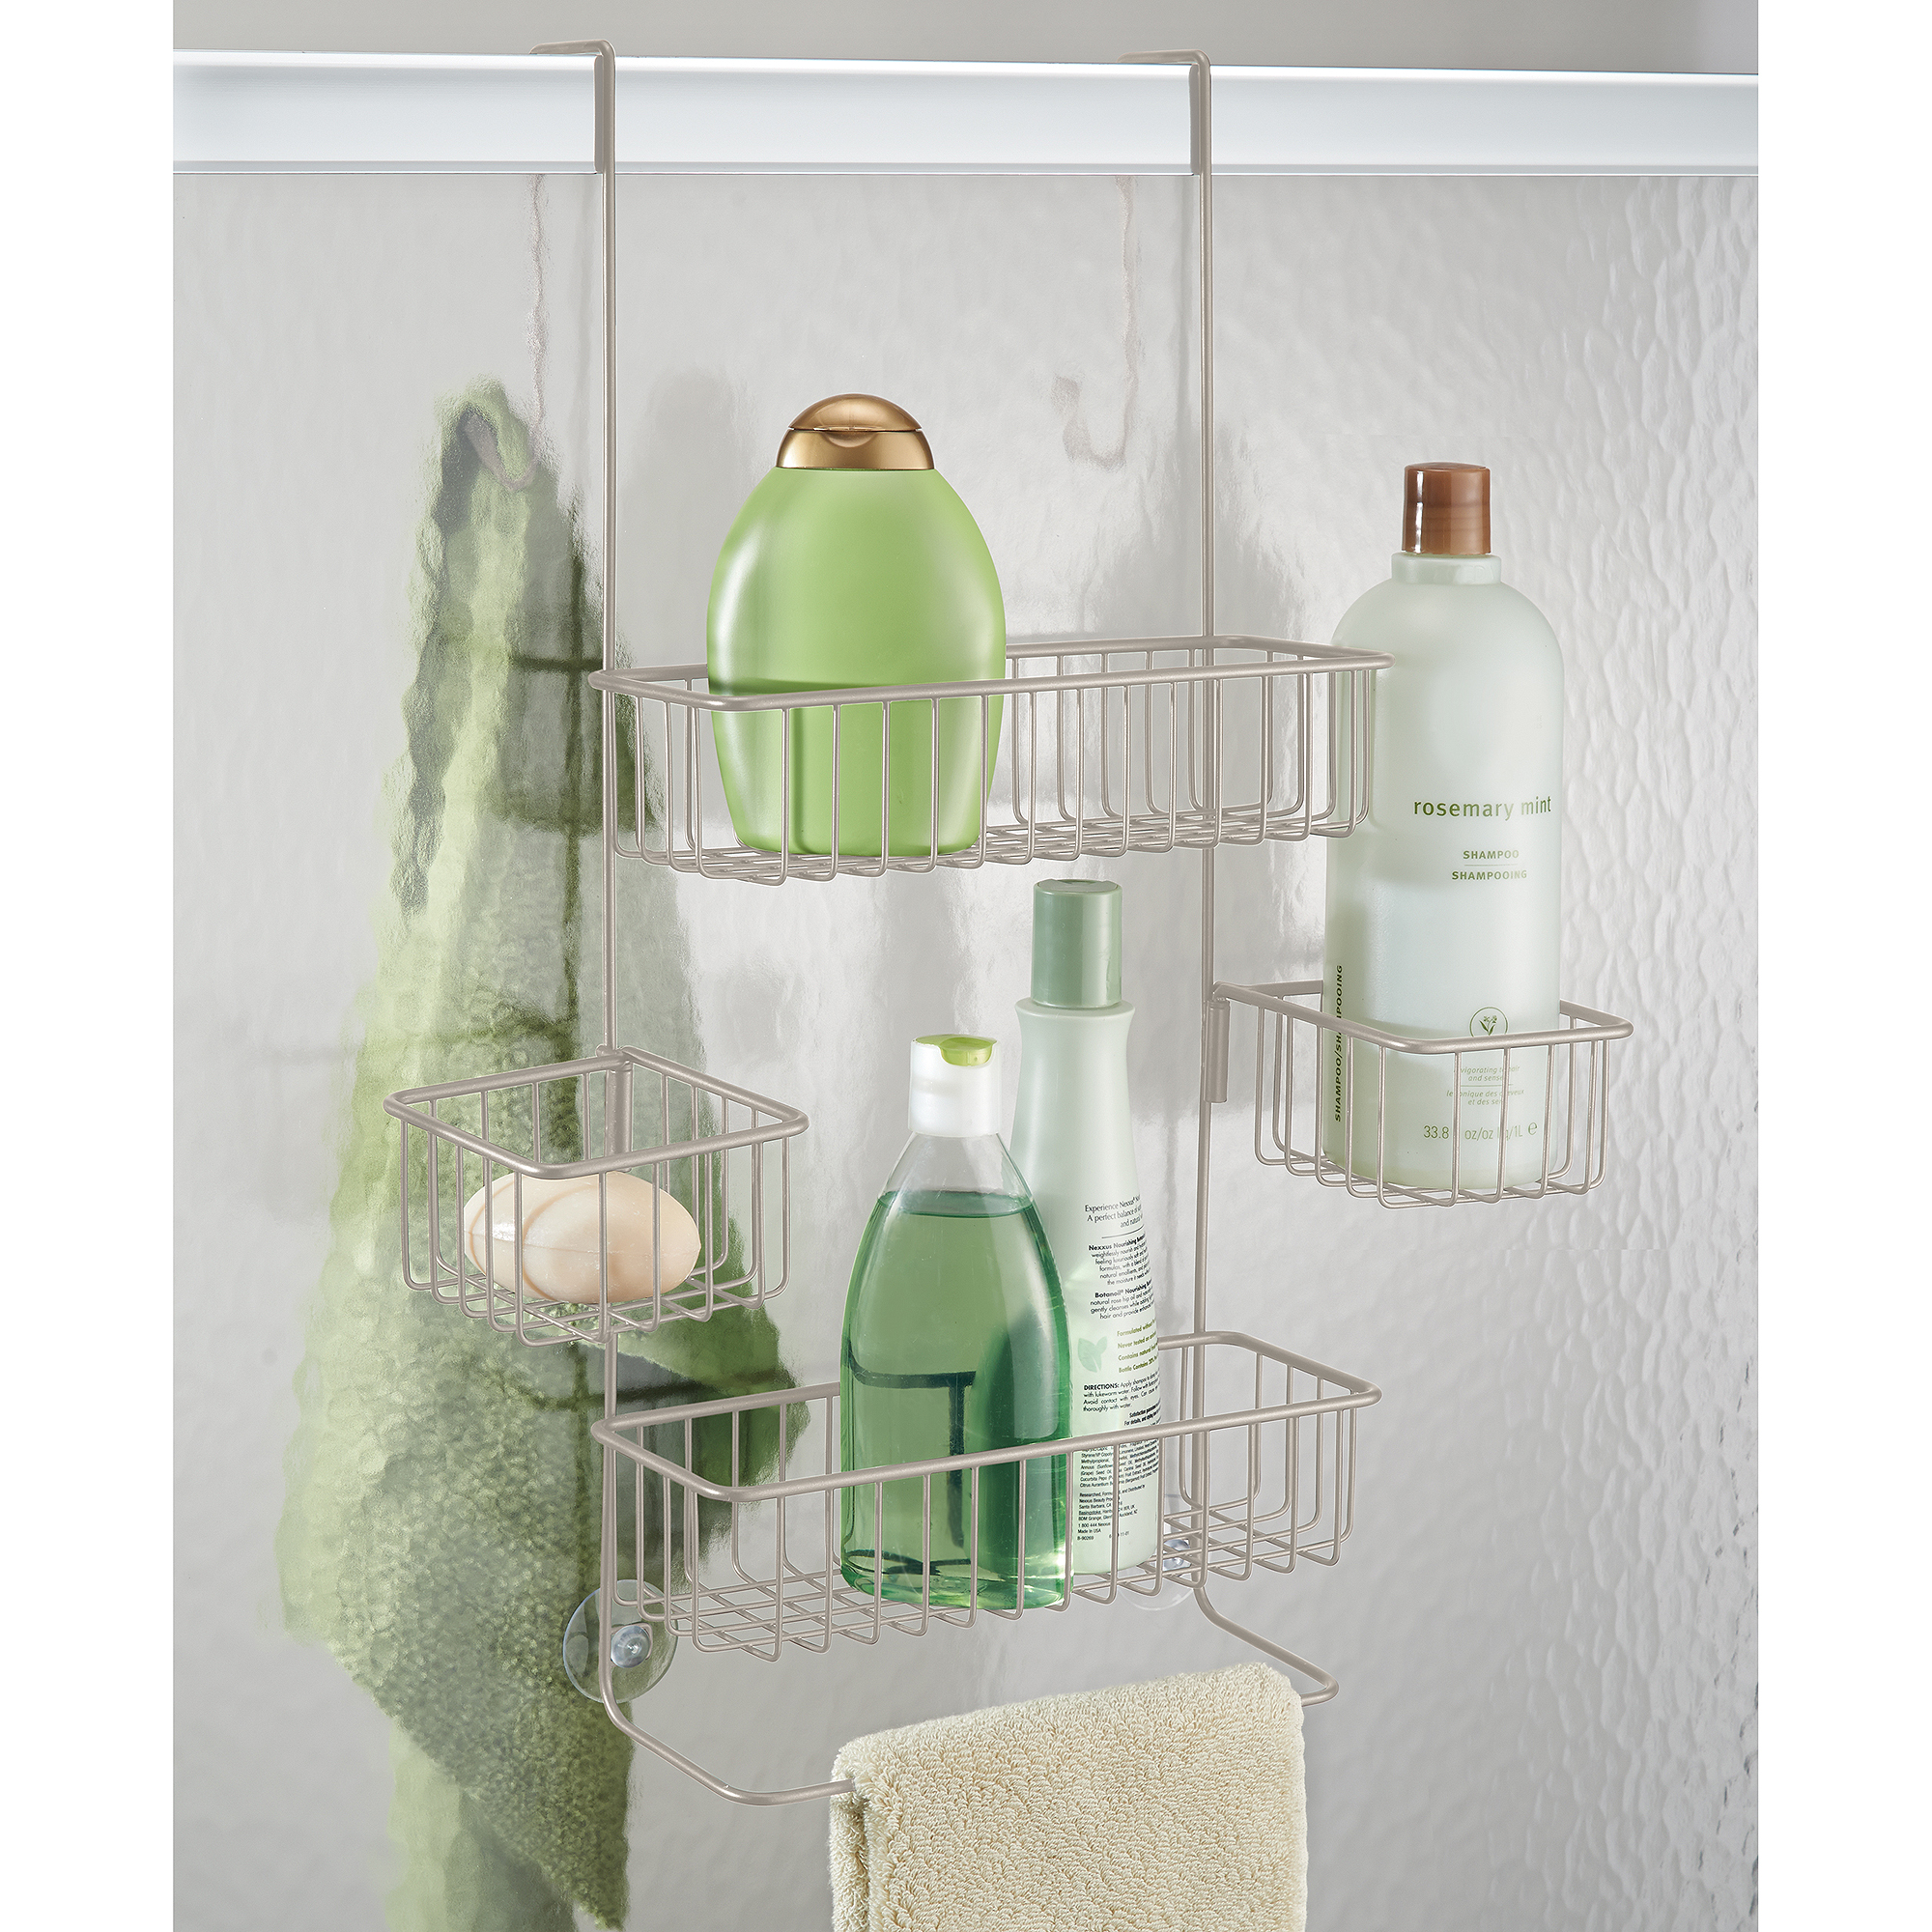 2-Piece Shower Caddy Set, White - Walmart.com